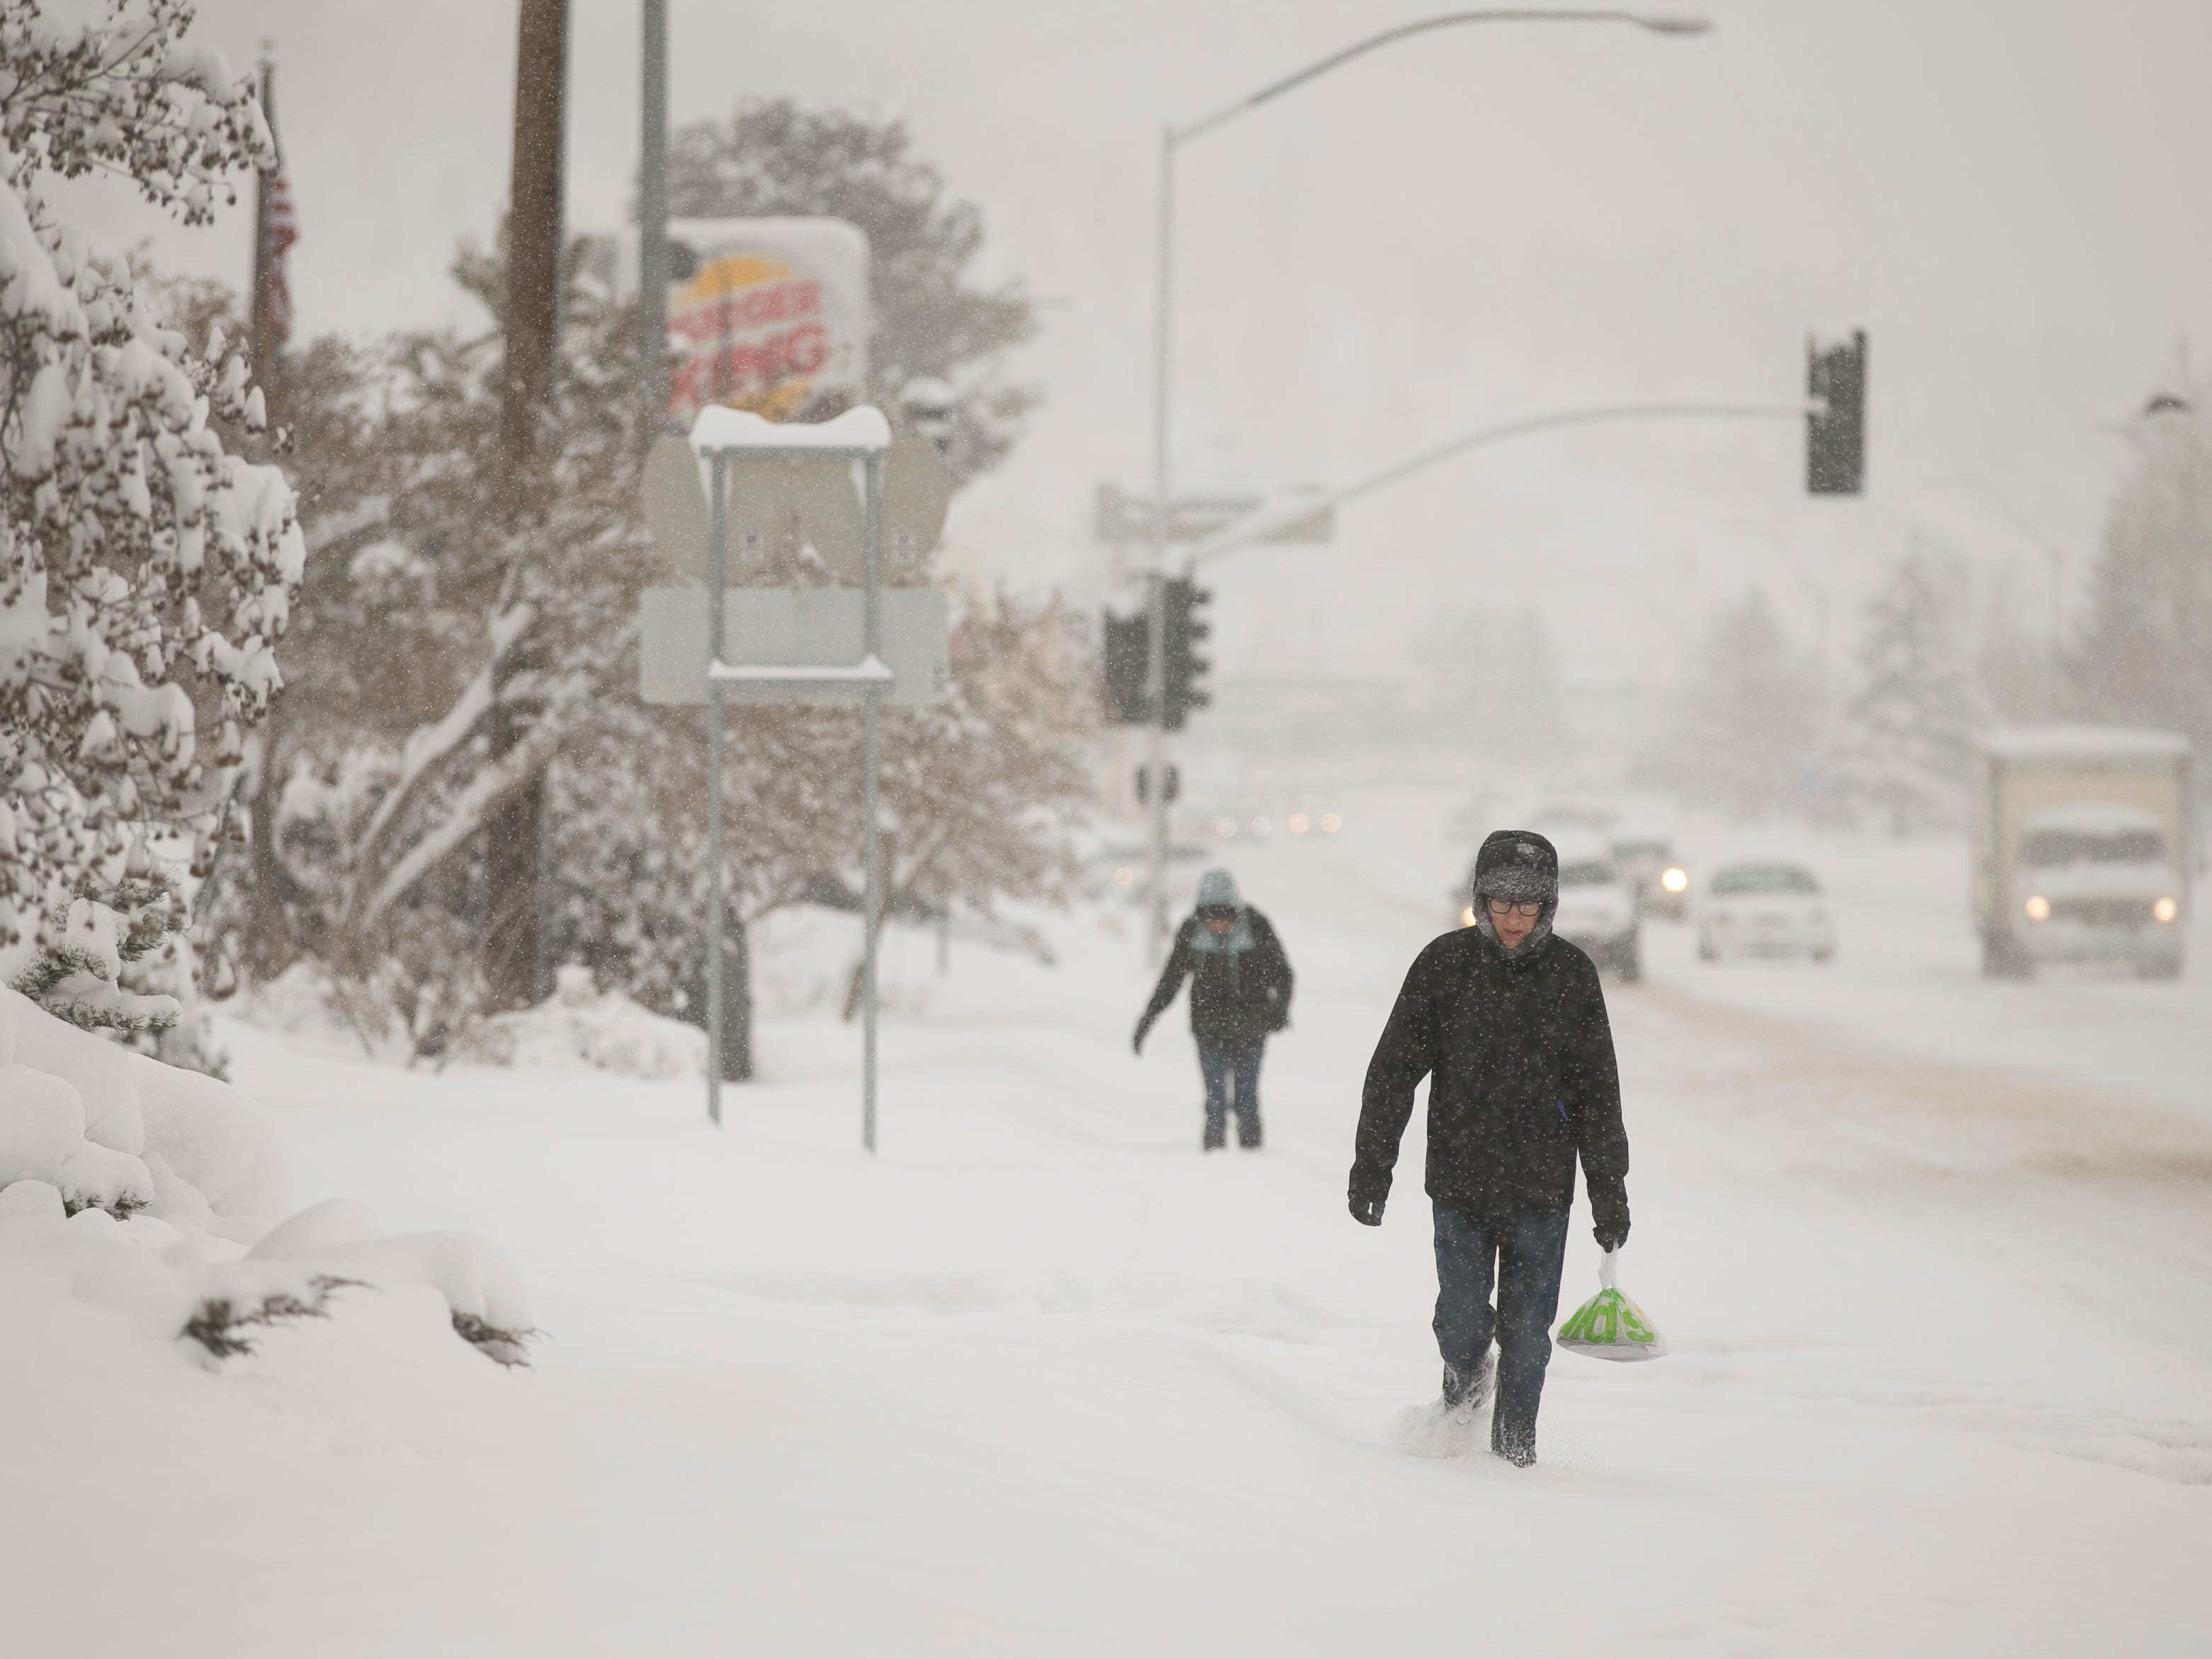 Northern Arizona University student Matthew Bartush carries breakfast through the snow as it falls over Flagstaff,  Feb. 21, 2019. This storm was expected to bring 20-30 inches of snow around northern Arizona through Friday.